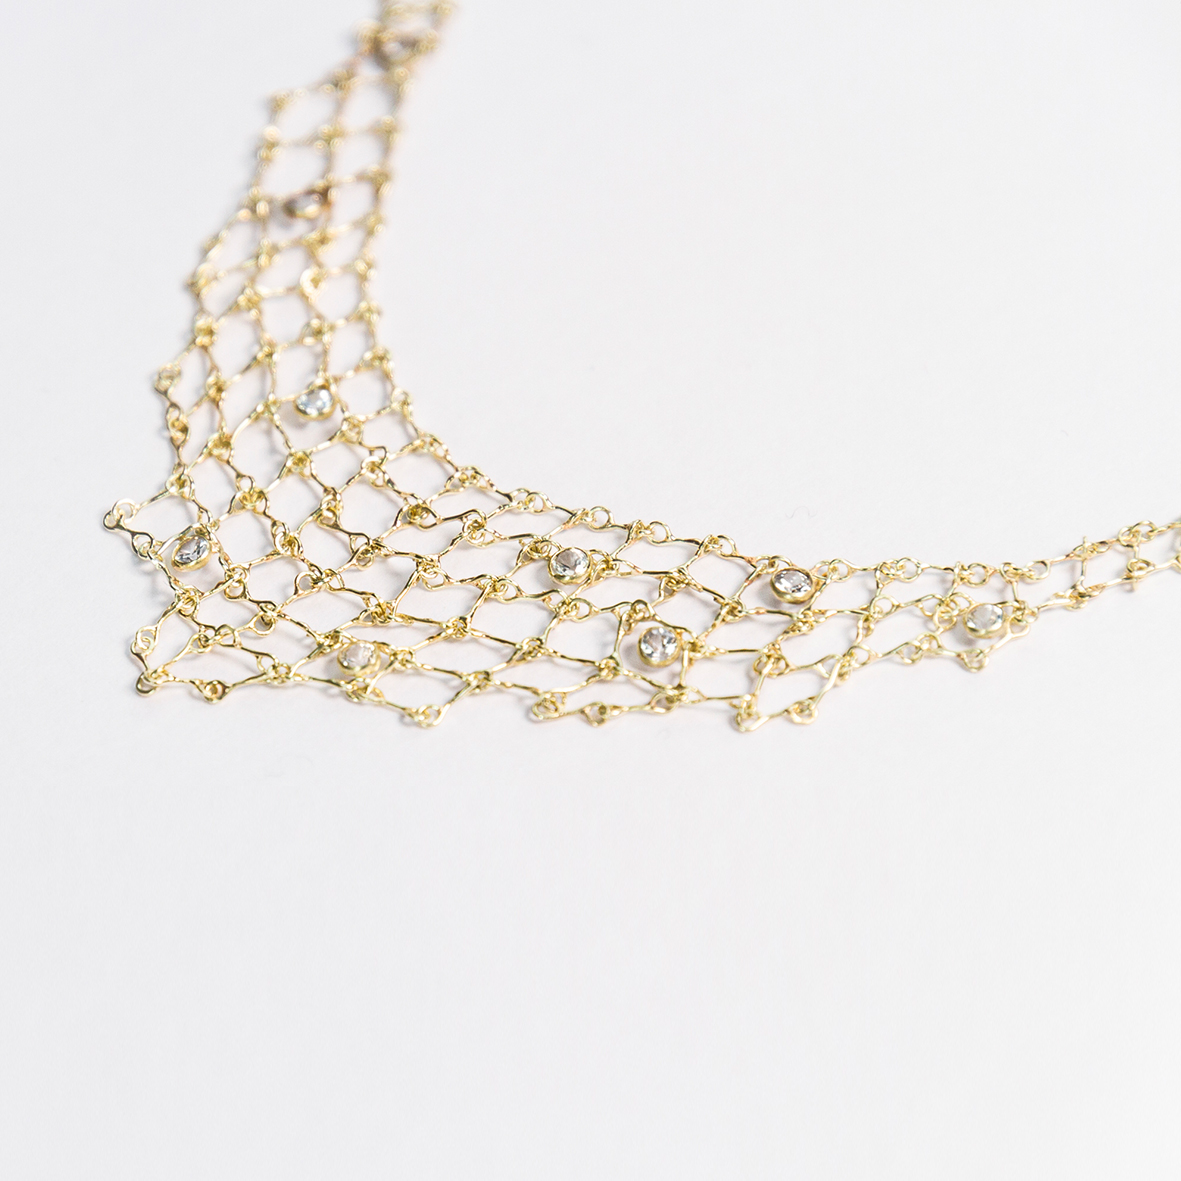 1. OONA_philo_principal_sapphire triangle net necklace